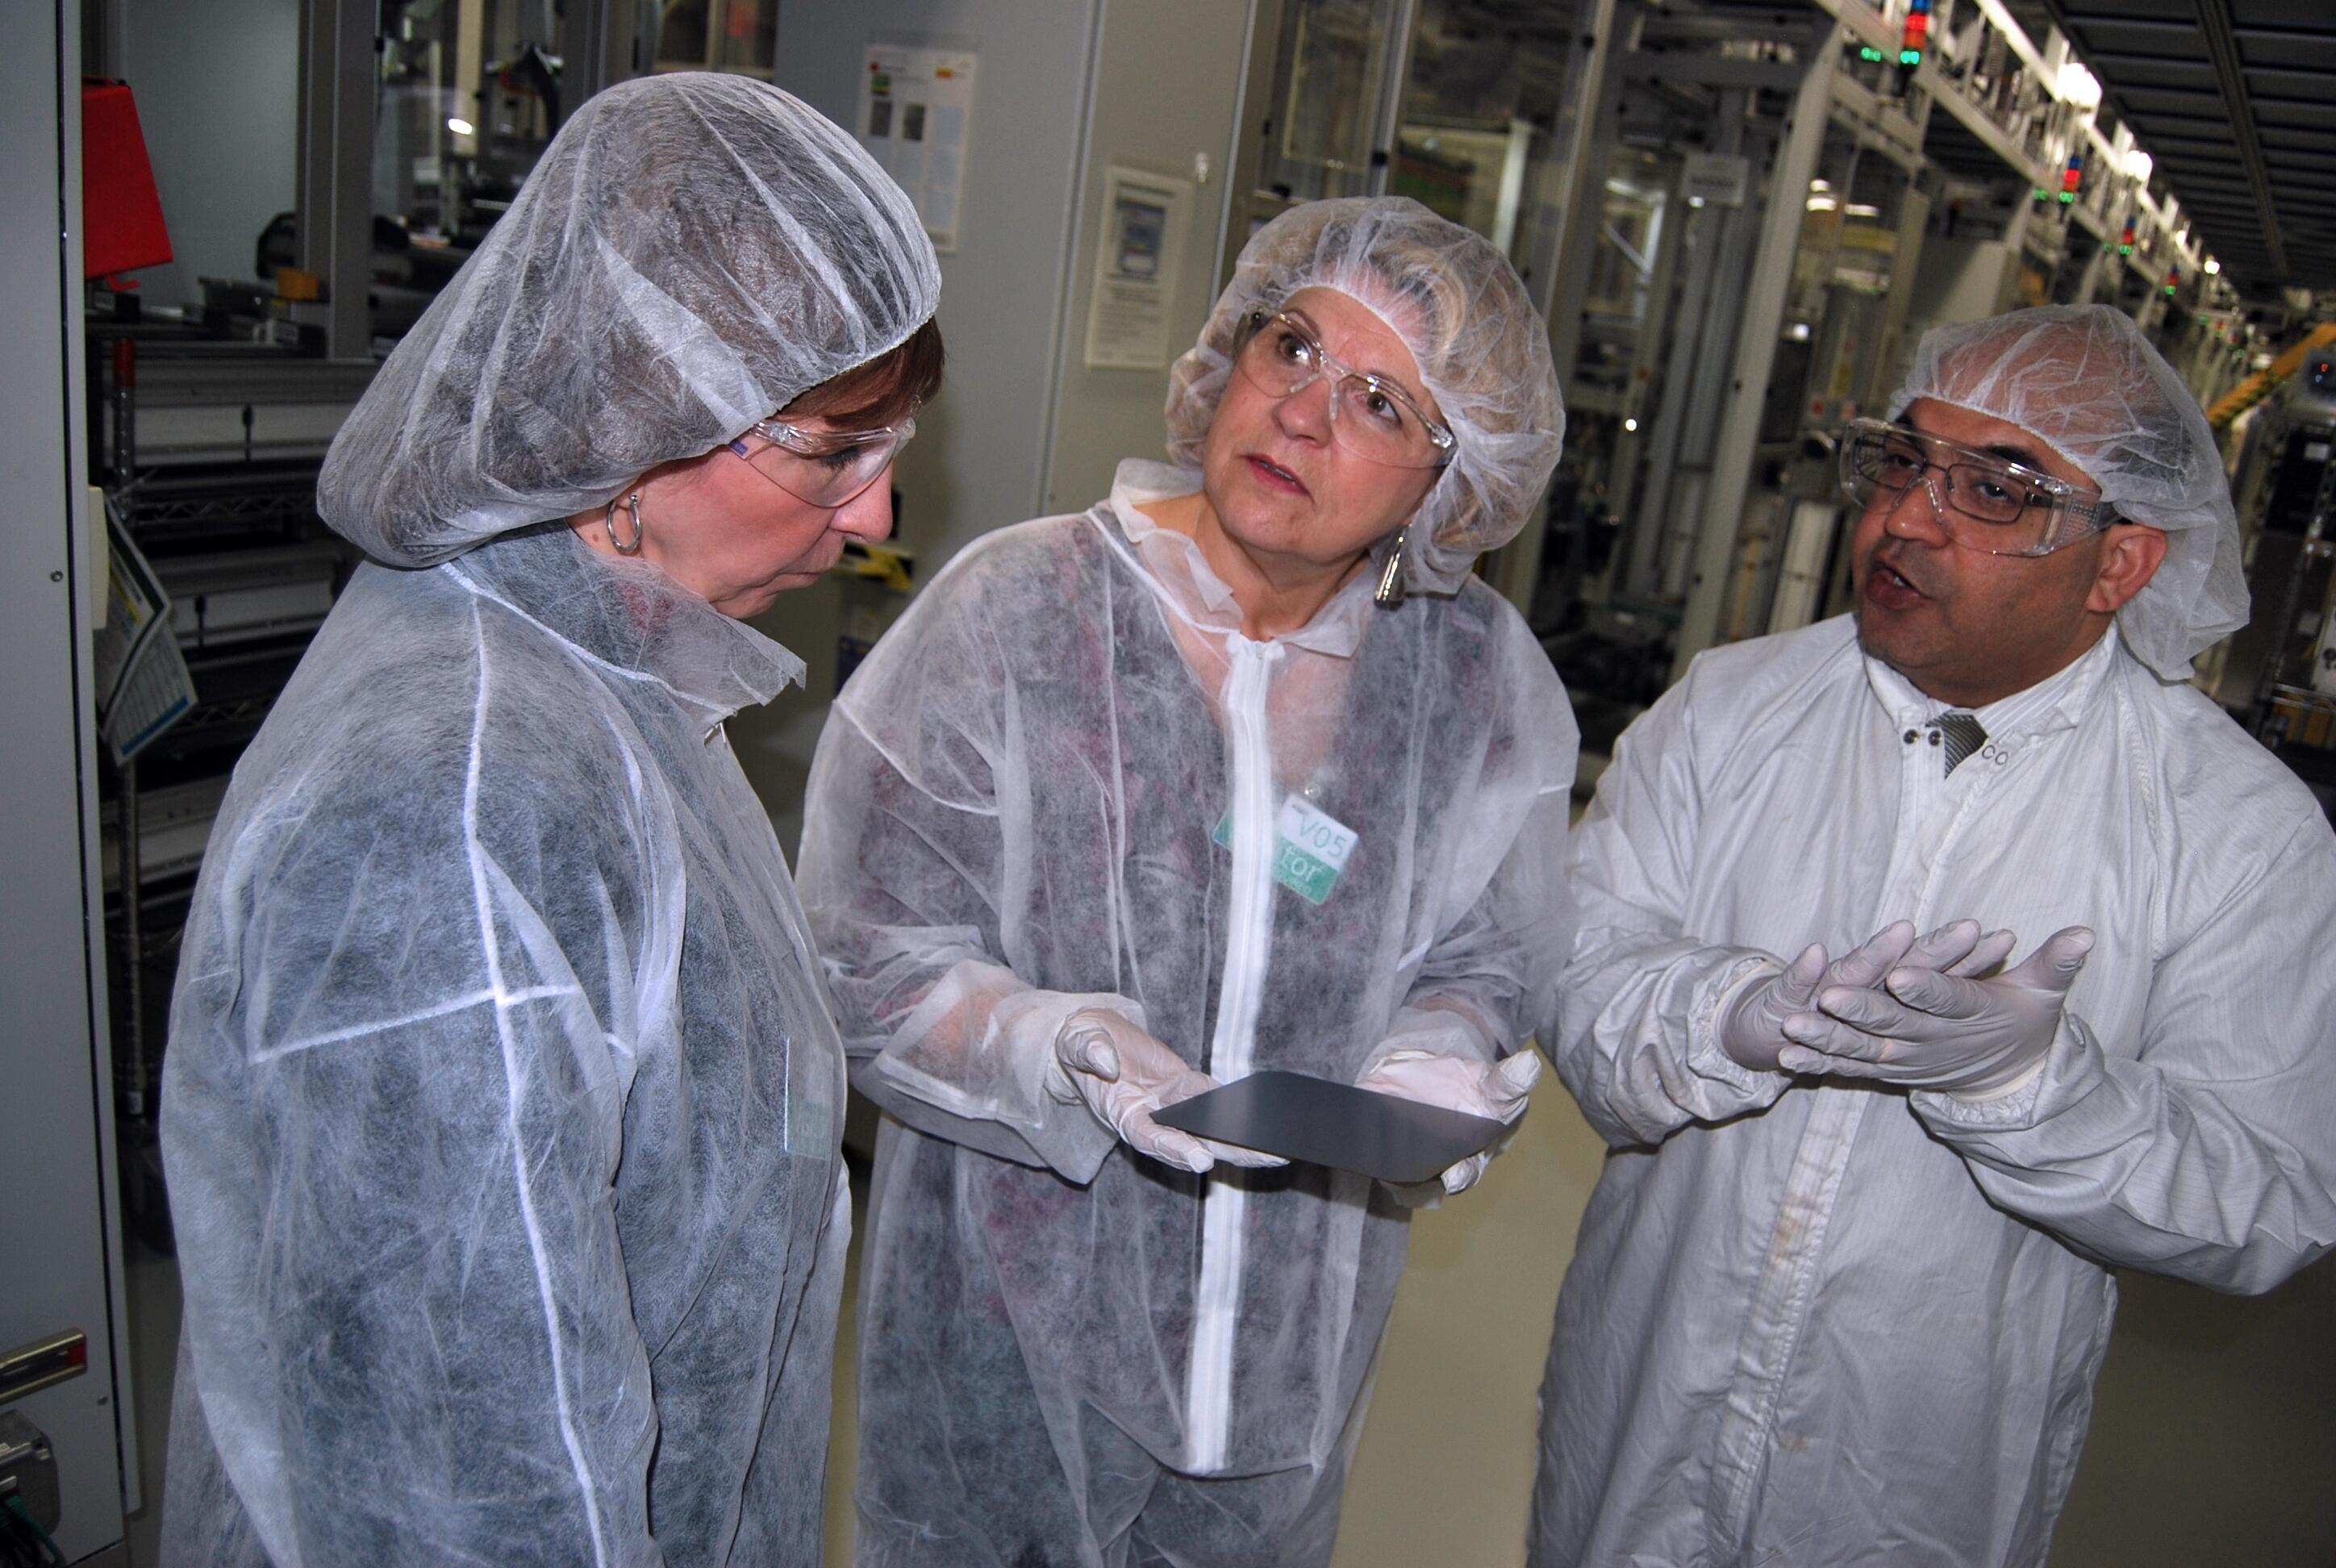 SolarWorld President Mukesh Dulani, right, describes the technology used to produce the fragile solar cell held by CBP Senior Import Specialist Katie Schultz, center, while CBP Import Specialist Kristy Huckins listens. Photo by Ed Colford